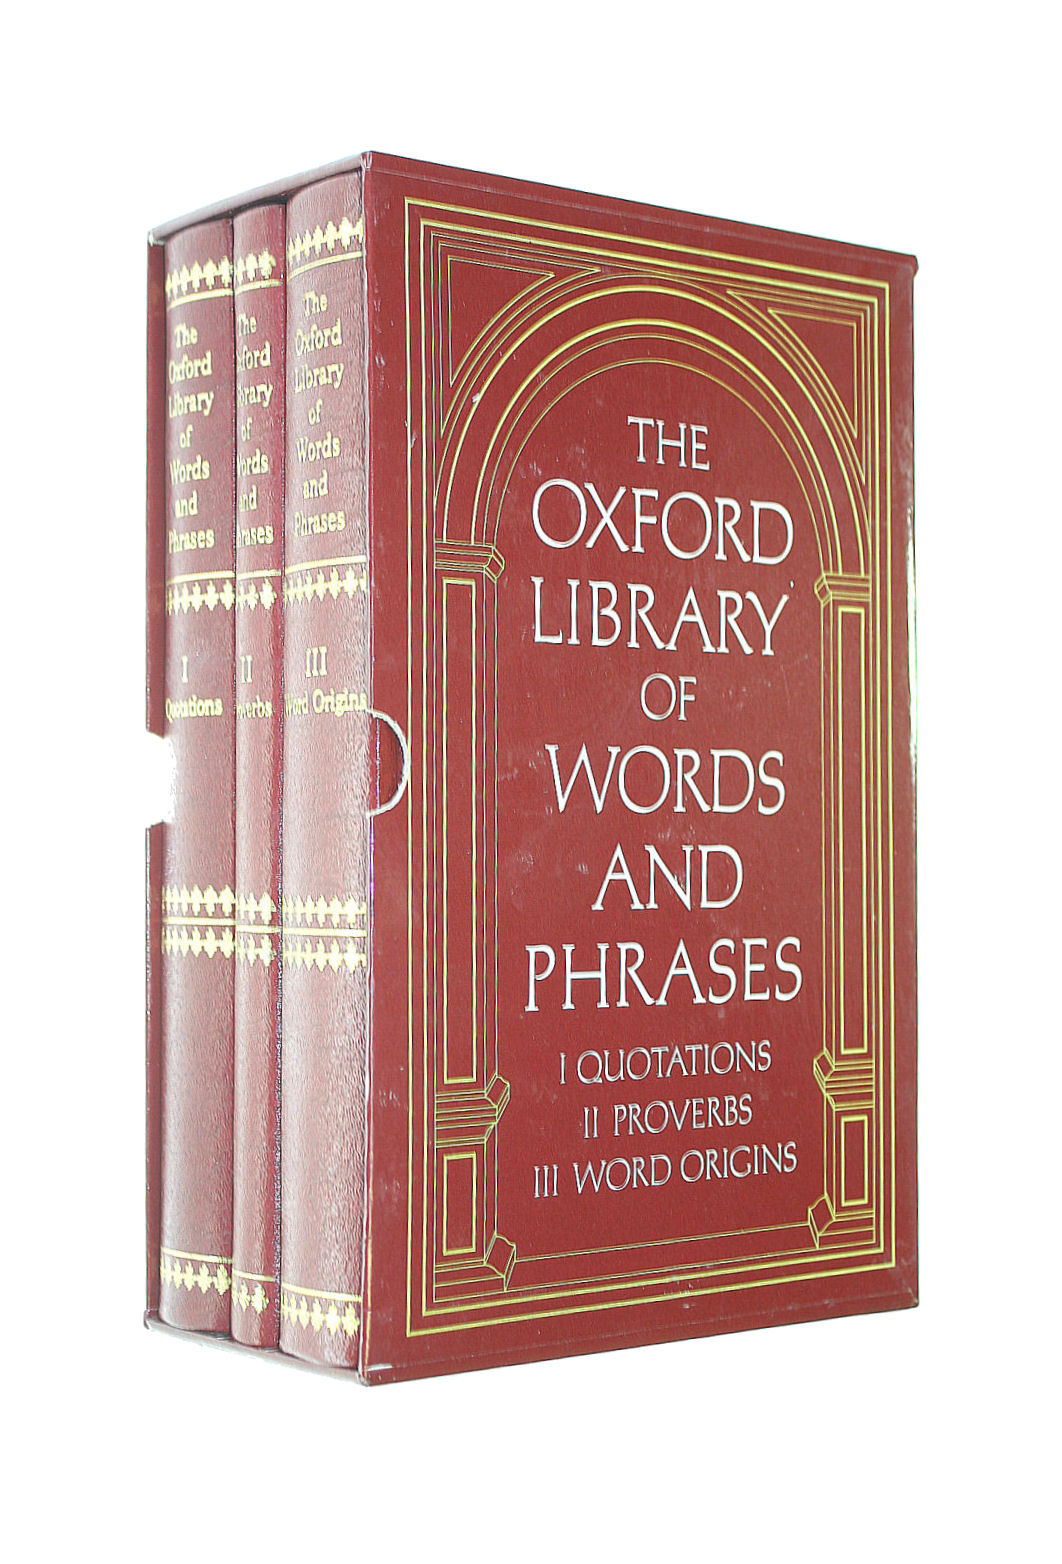 Image for The Oxford Library Of Words And Phrases . I Quotations Ii Proverbs Iii Word Origins